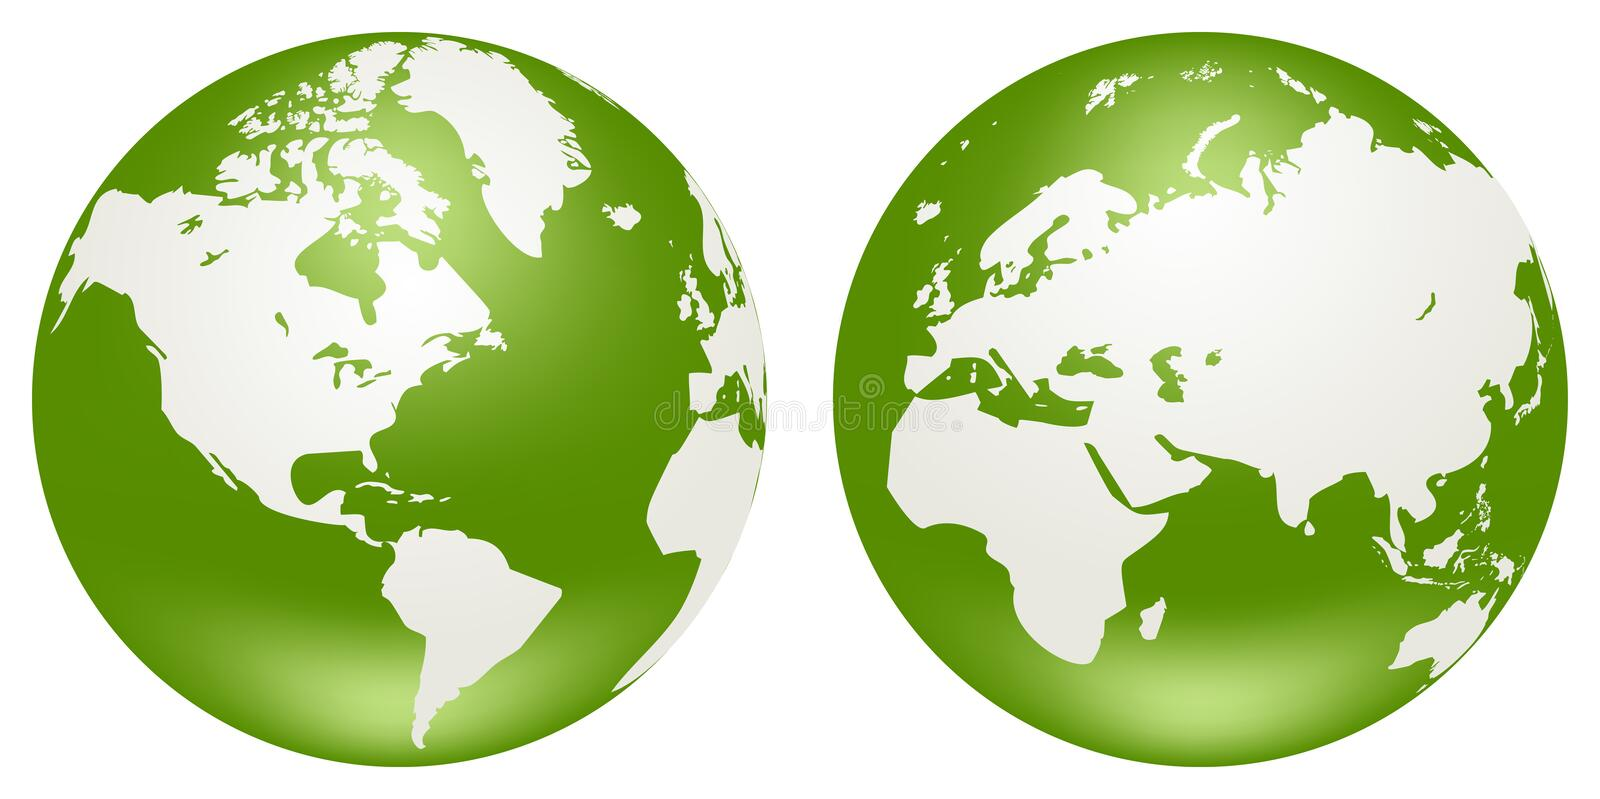 Download Globes of Earth stock photo. Image of world, atlantic - 13250052